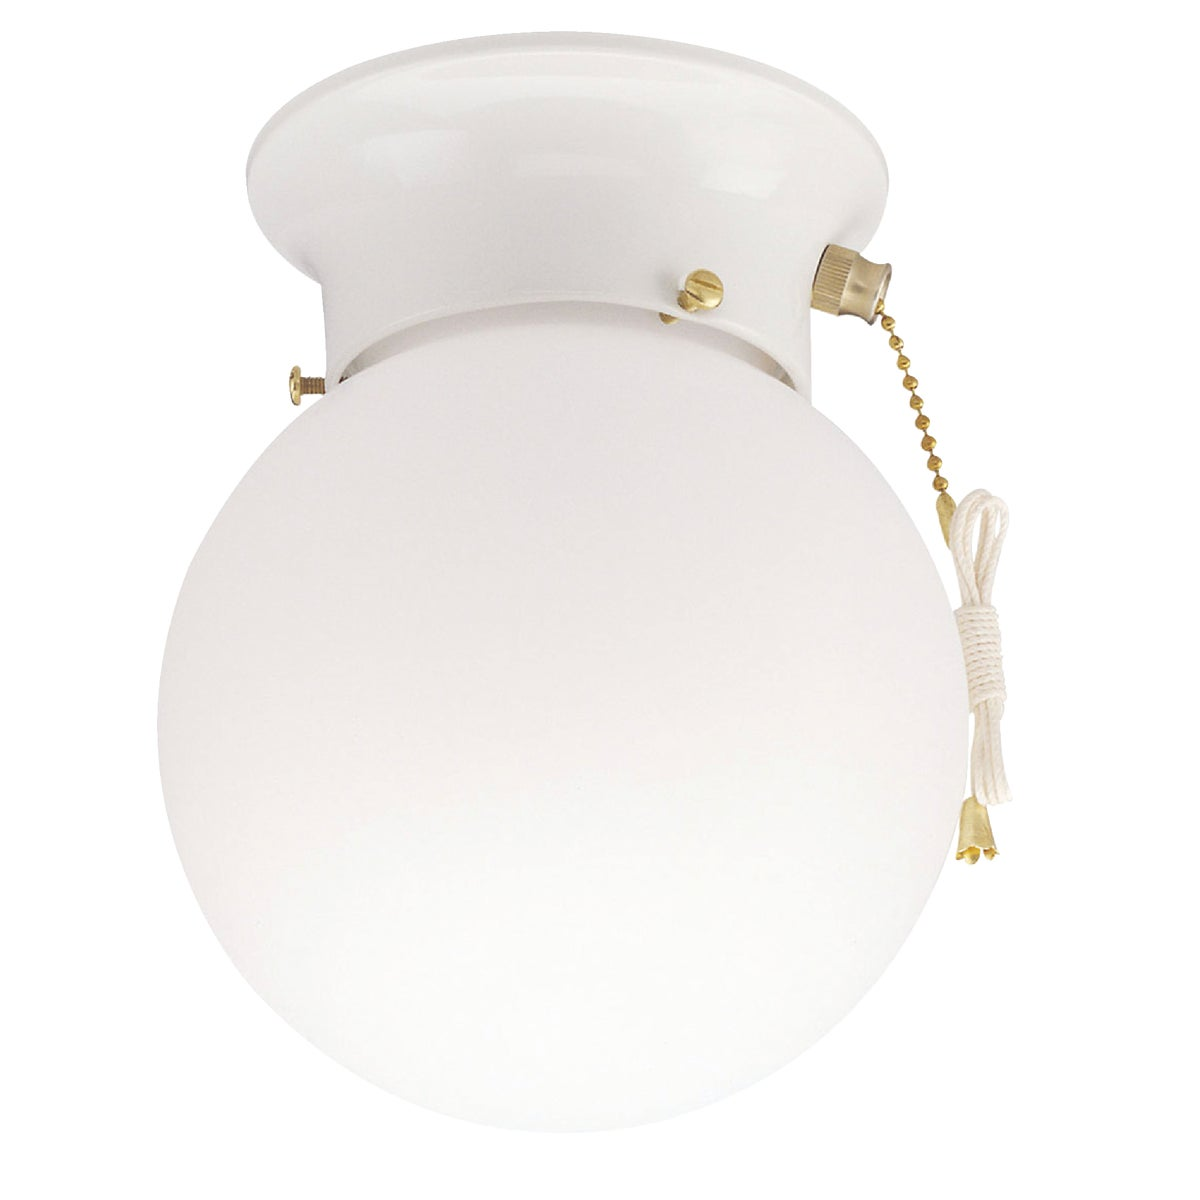 1BULB WHT GLOBE FIXTURE - ICL9WHW by Canarm Gs